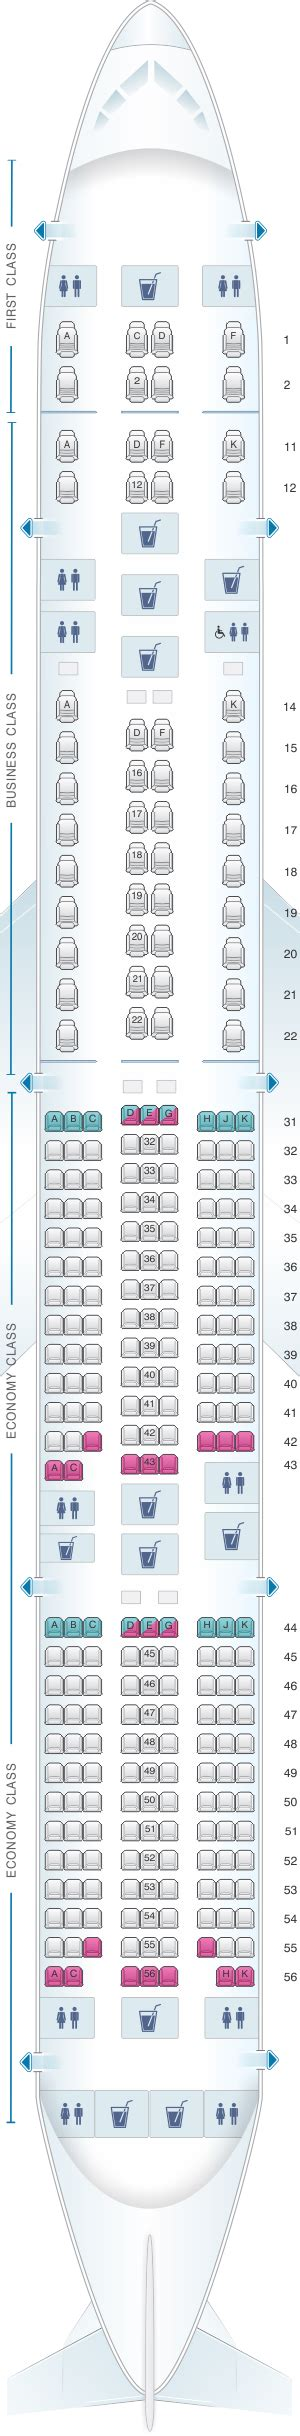 singapore airlines 777 300er seating plan seat map singapore airlines boeing b777 300er three class